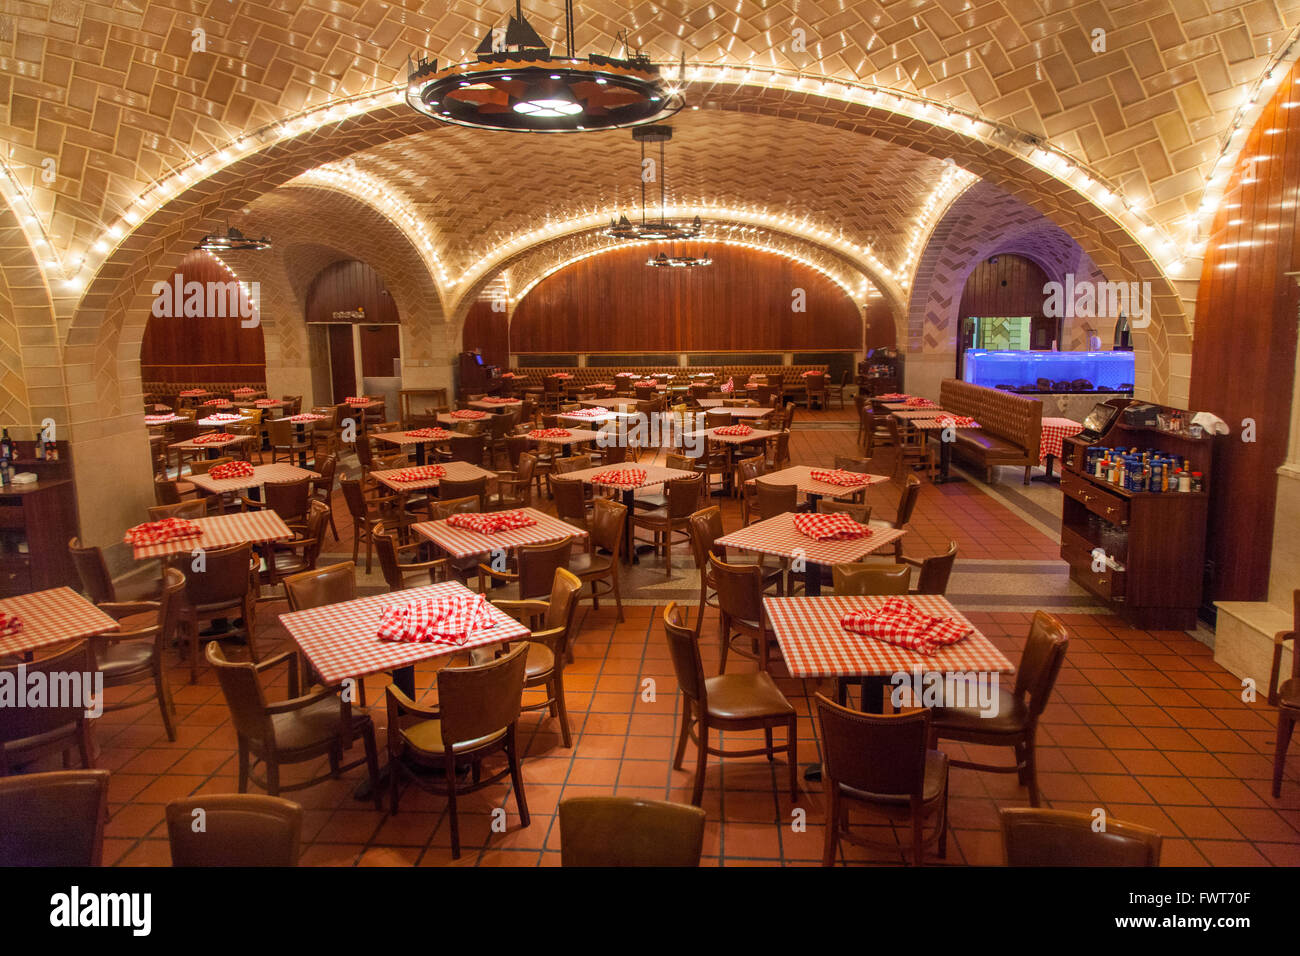 Oyster Bar Grand Central Stock Photos & Oyster Bar Grand Central ...